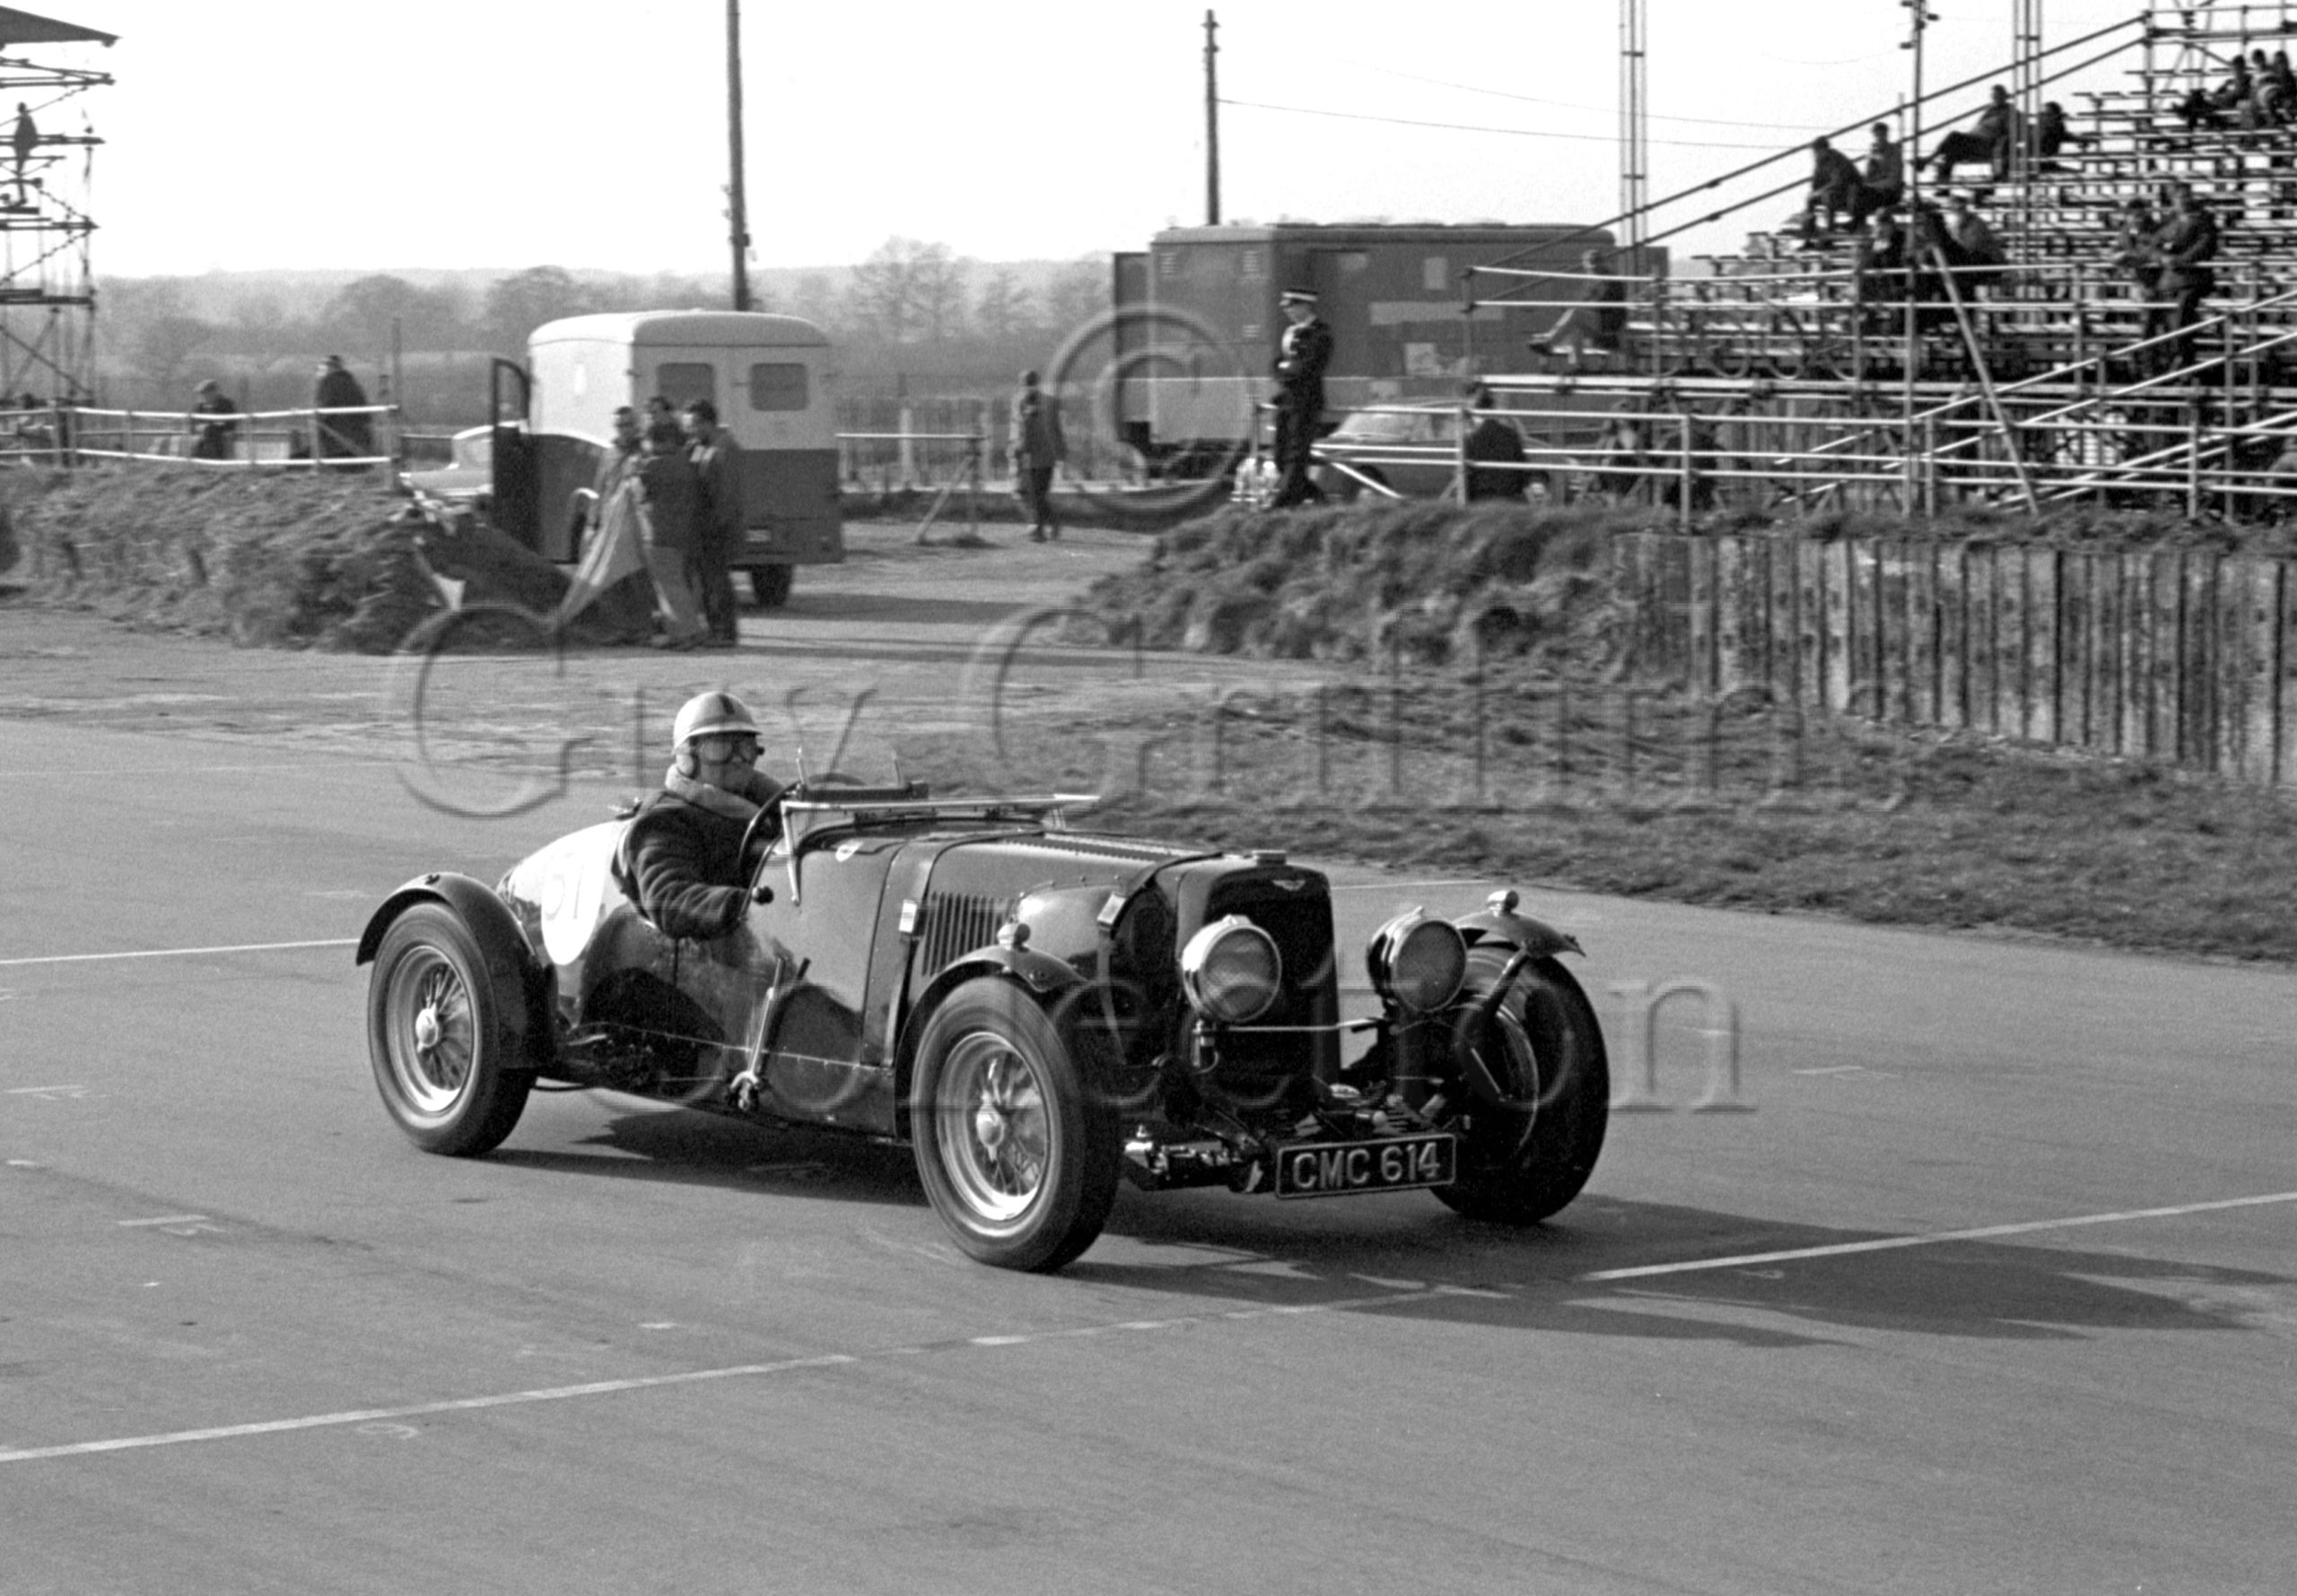 97-523–D-Edwards–Aston-Martin-CMC-614–Silverstone–19-03-1966.jpg - Guy Griffiths Collection